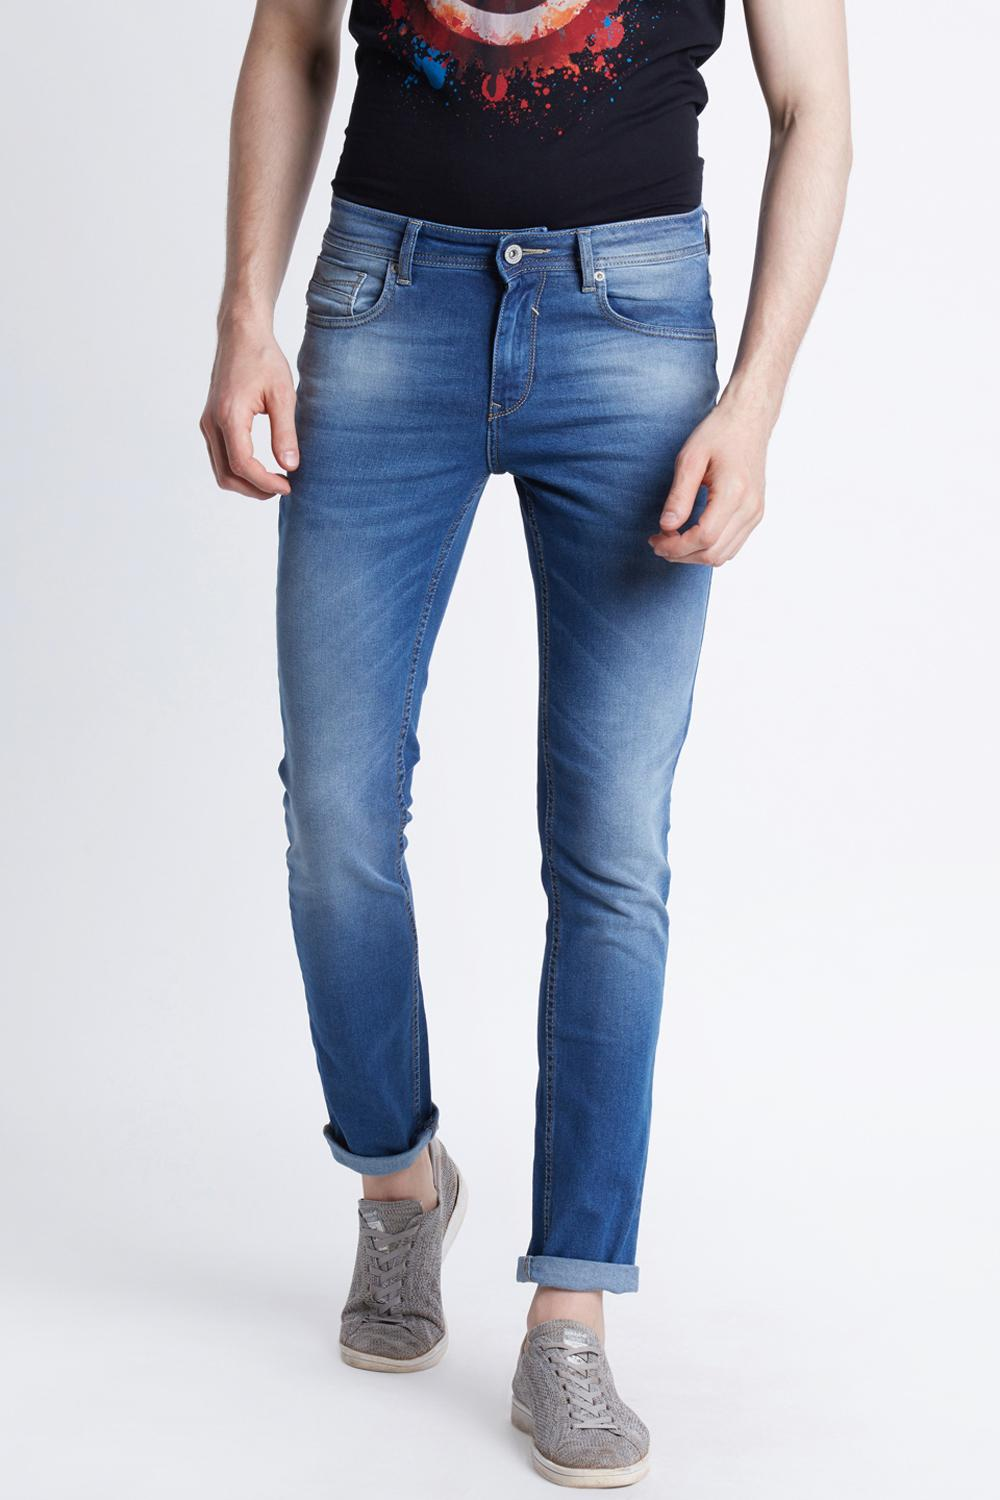 Buy Men Jeans Online In India Best Jeans For Men Pantaloons